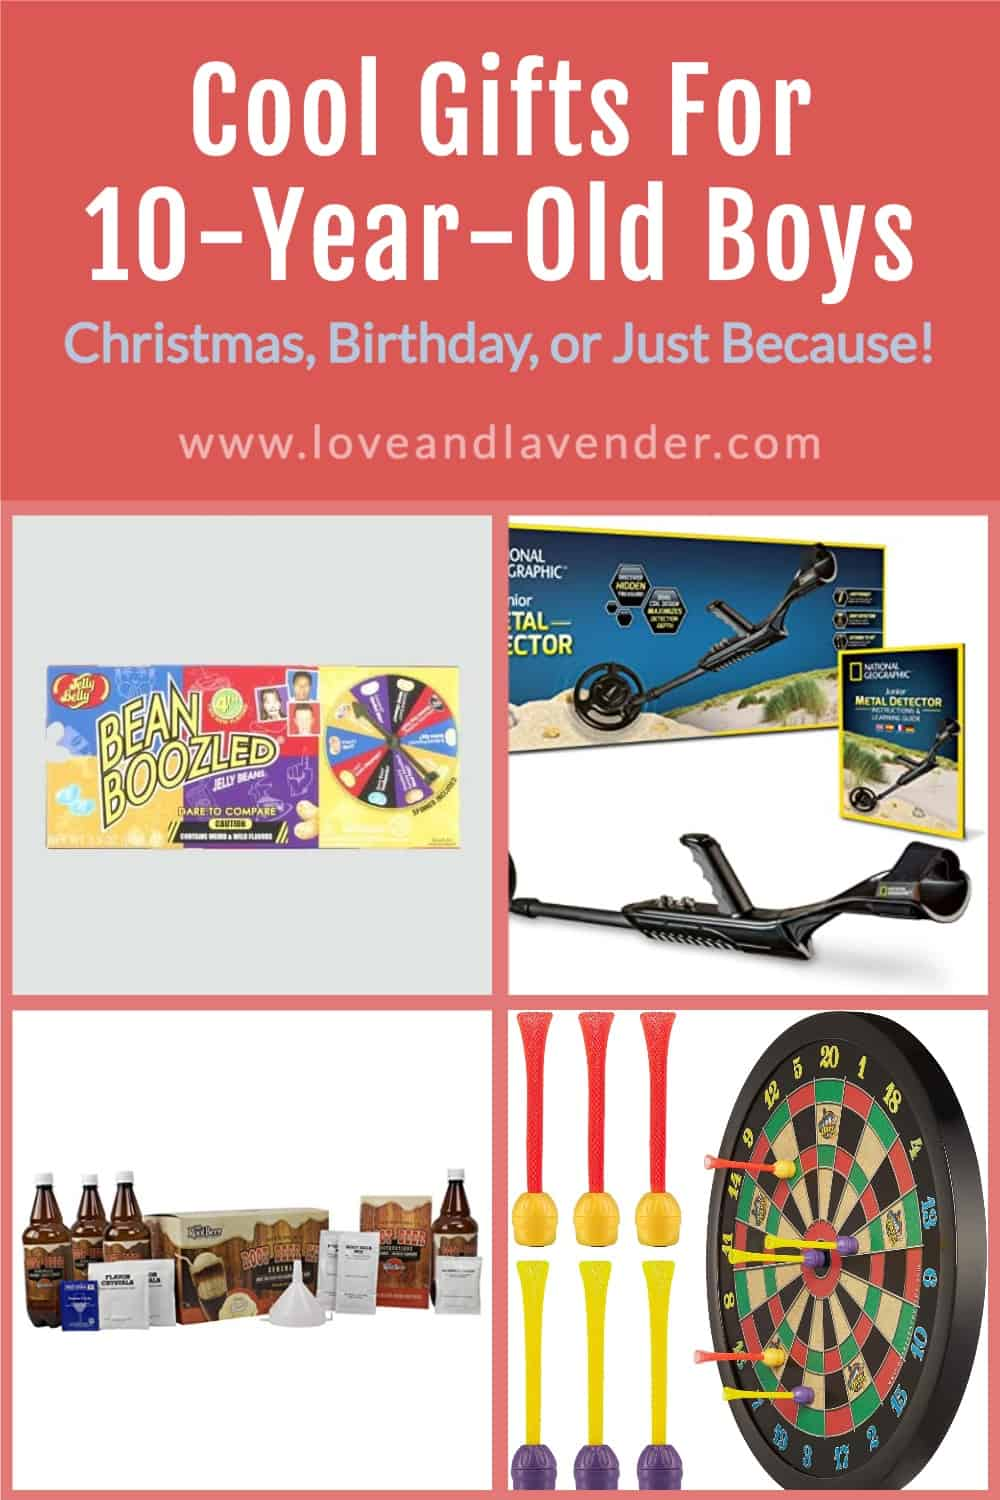 pinterest pin - gifts for 10 year old boys